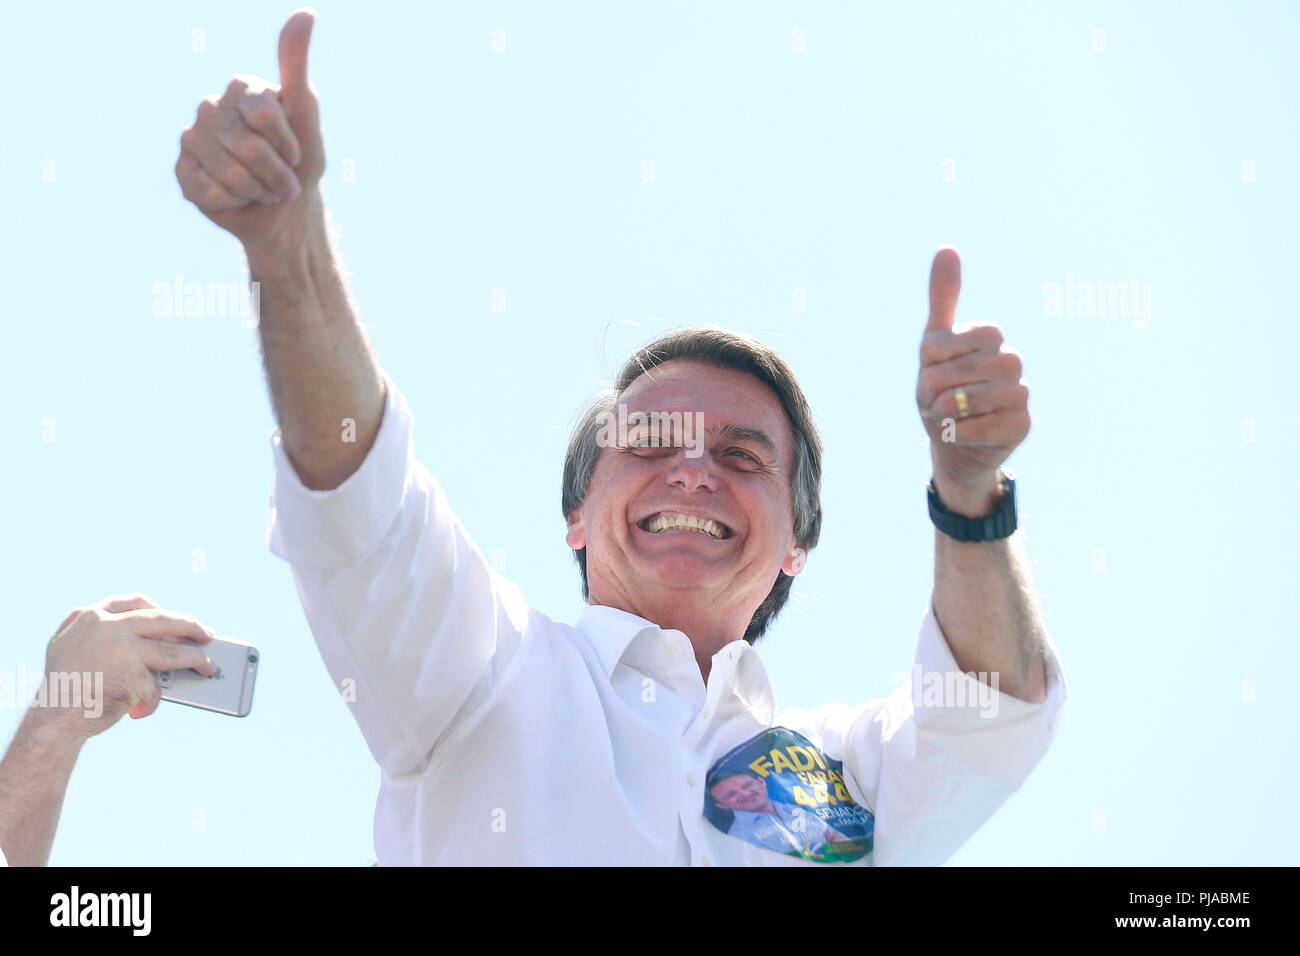 Brasilia, Brazil. 05th Sep, 2018. Candidate to the Brazilian presidency of the PSL party, Jair Bolosnaro, participates in a campaign act, in Brasilia, Brazil, 05 September 2018. The presidential election will take place in October. Credit: Joedson Alves/EFE/Alamy Live News - Stock Image